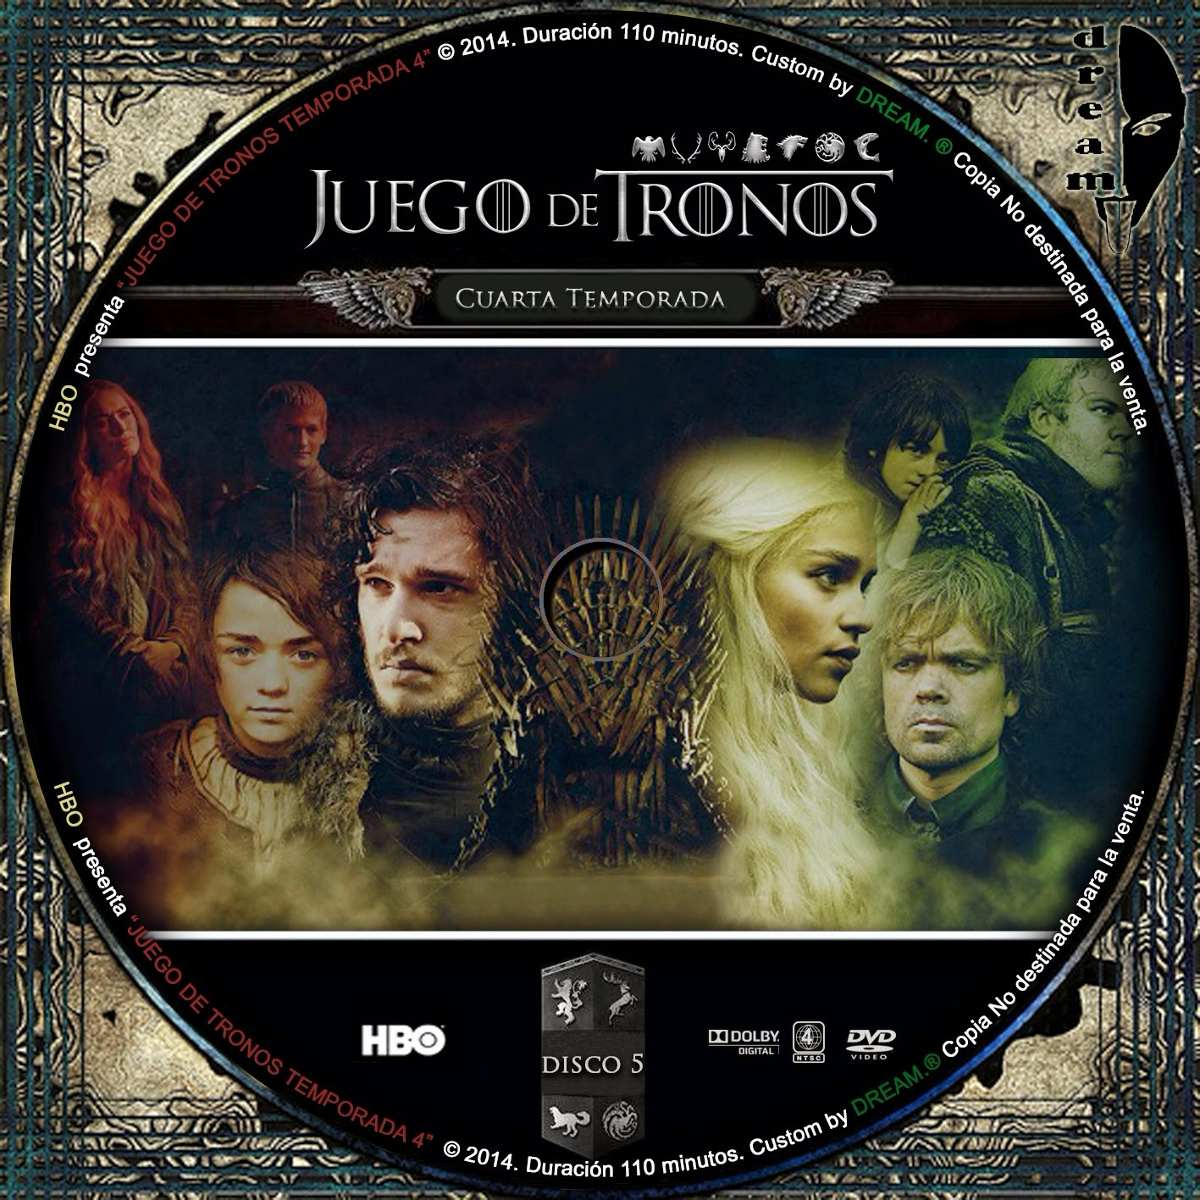 Juego De Tronos Temporada 4 Dvd Full Menu - Bs. 40.000,00 en Mercado ...